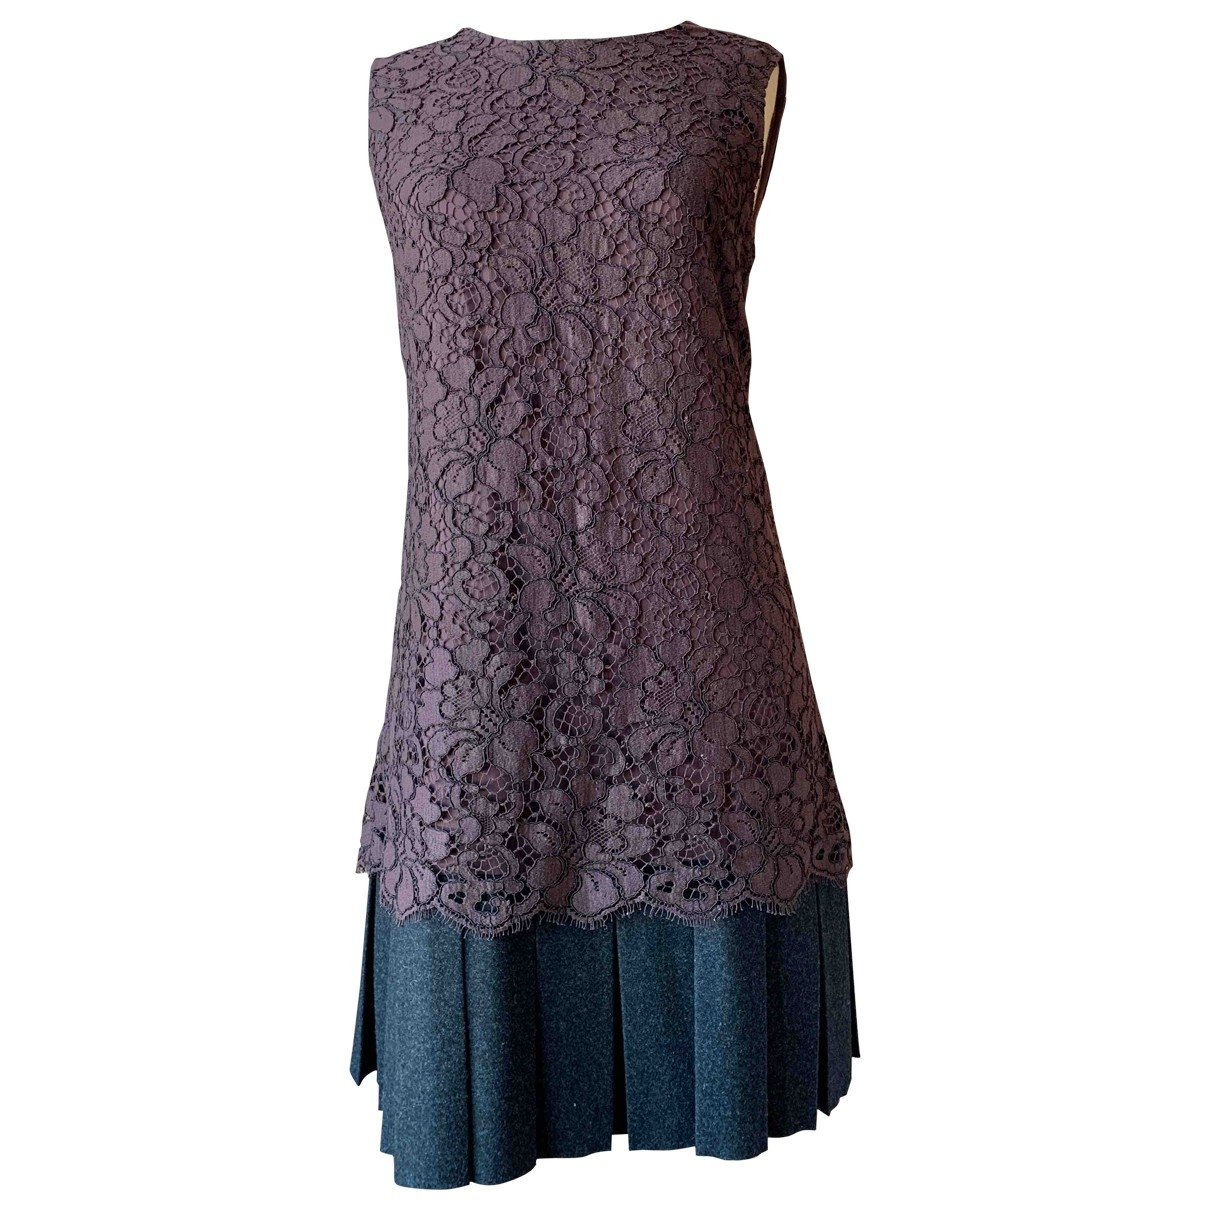 Dolce & Gabbana \N Burgundy Lace dress for Women 44 IT